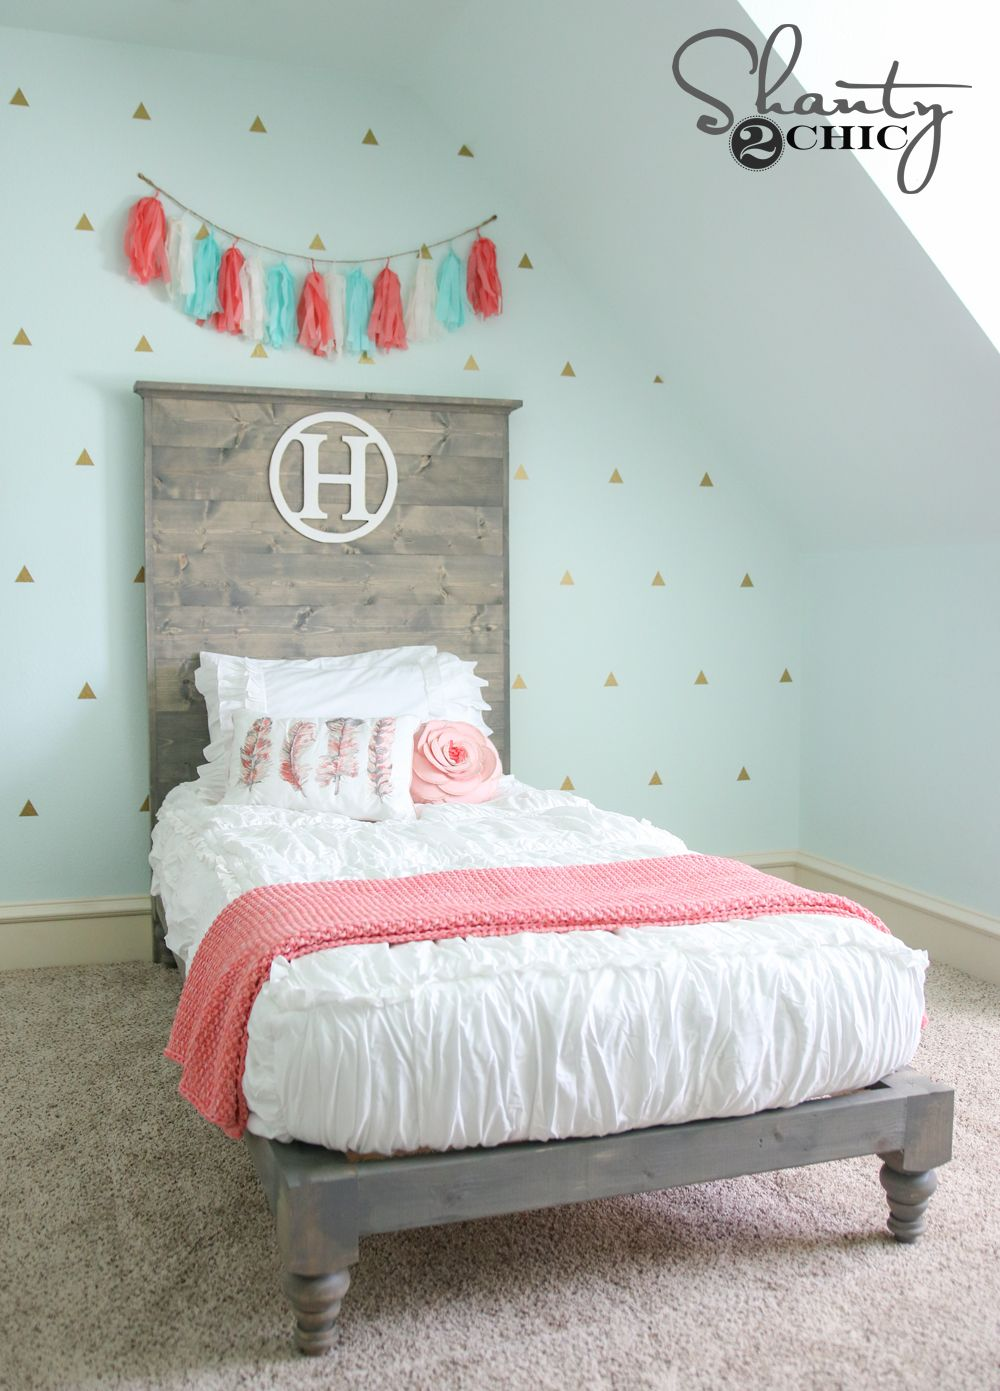 Wonderful Love The Colors, The Gold Triangle Decals, The Coral Accents And That Chic  White Bedding! Perfect Girlu0027s Room!